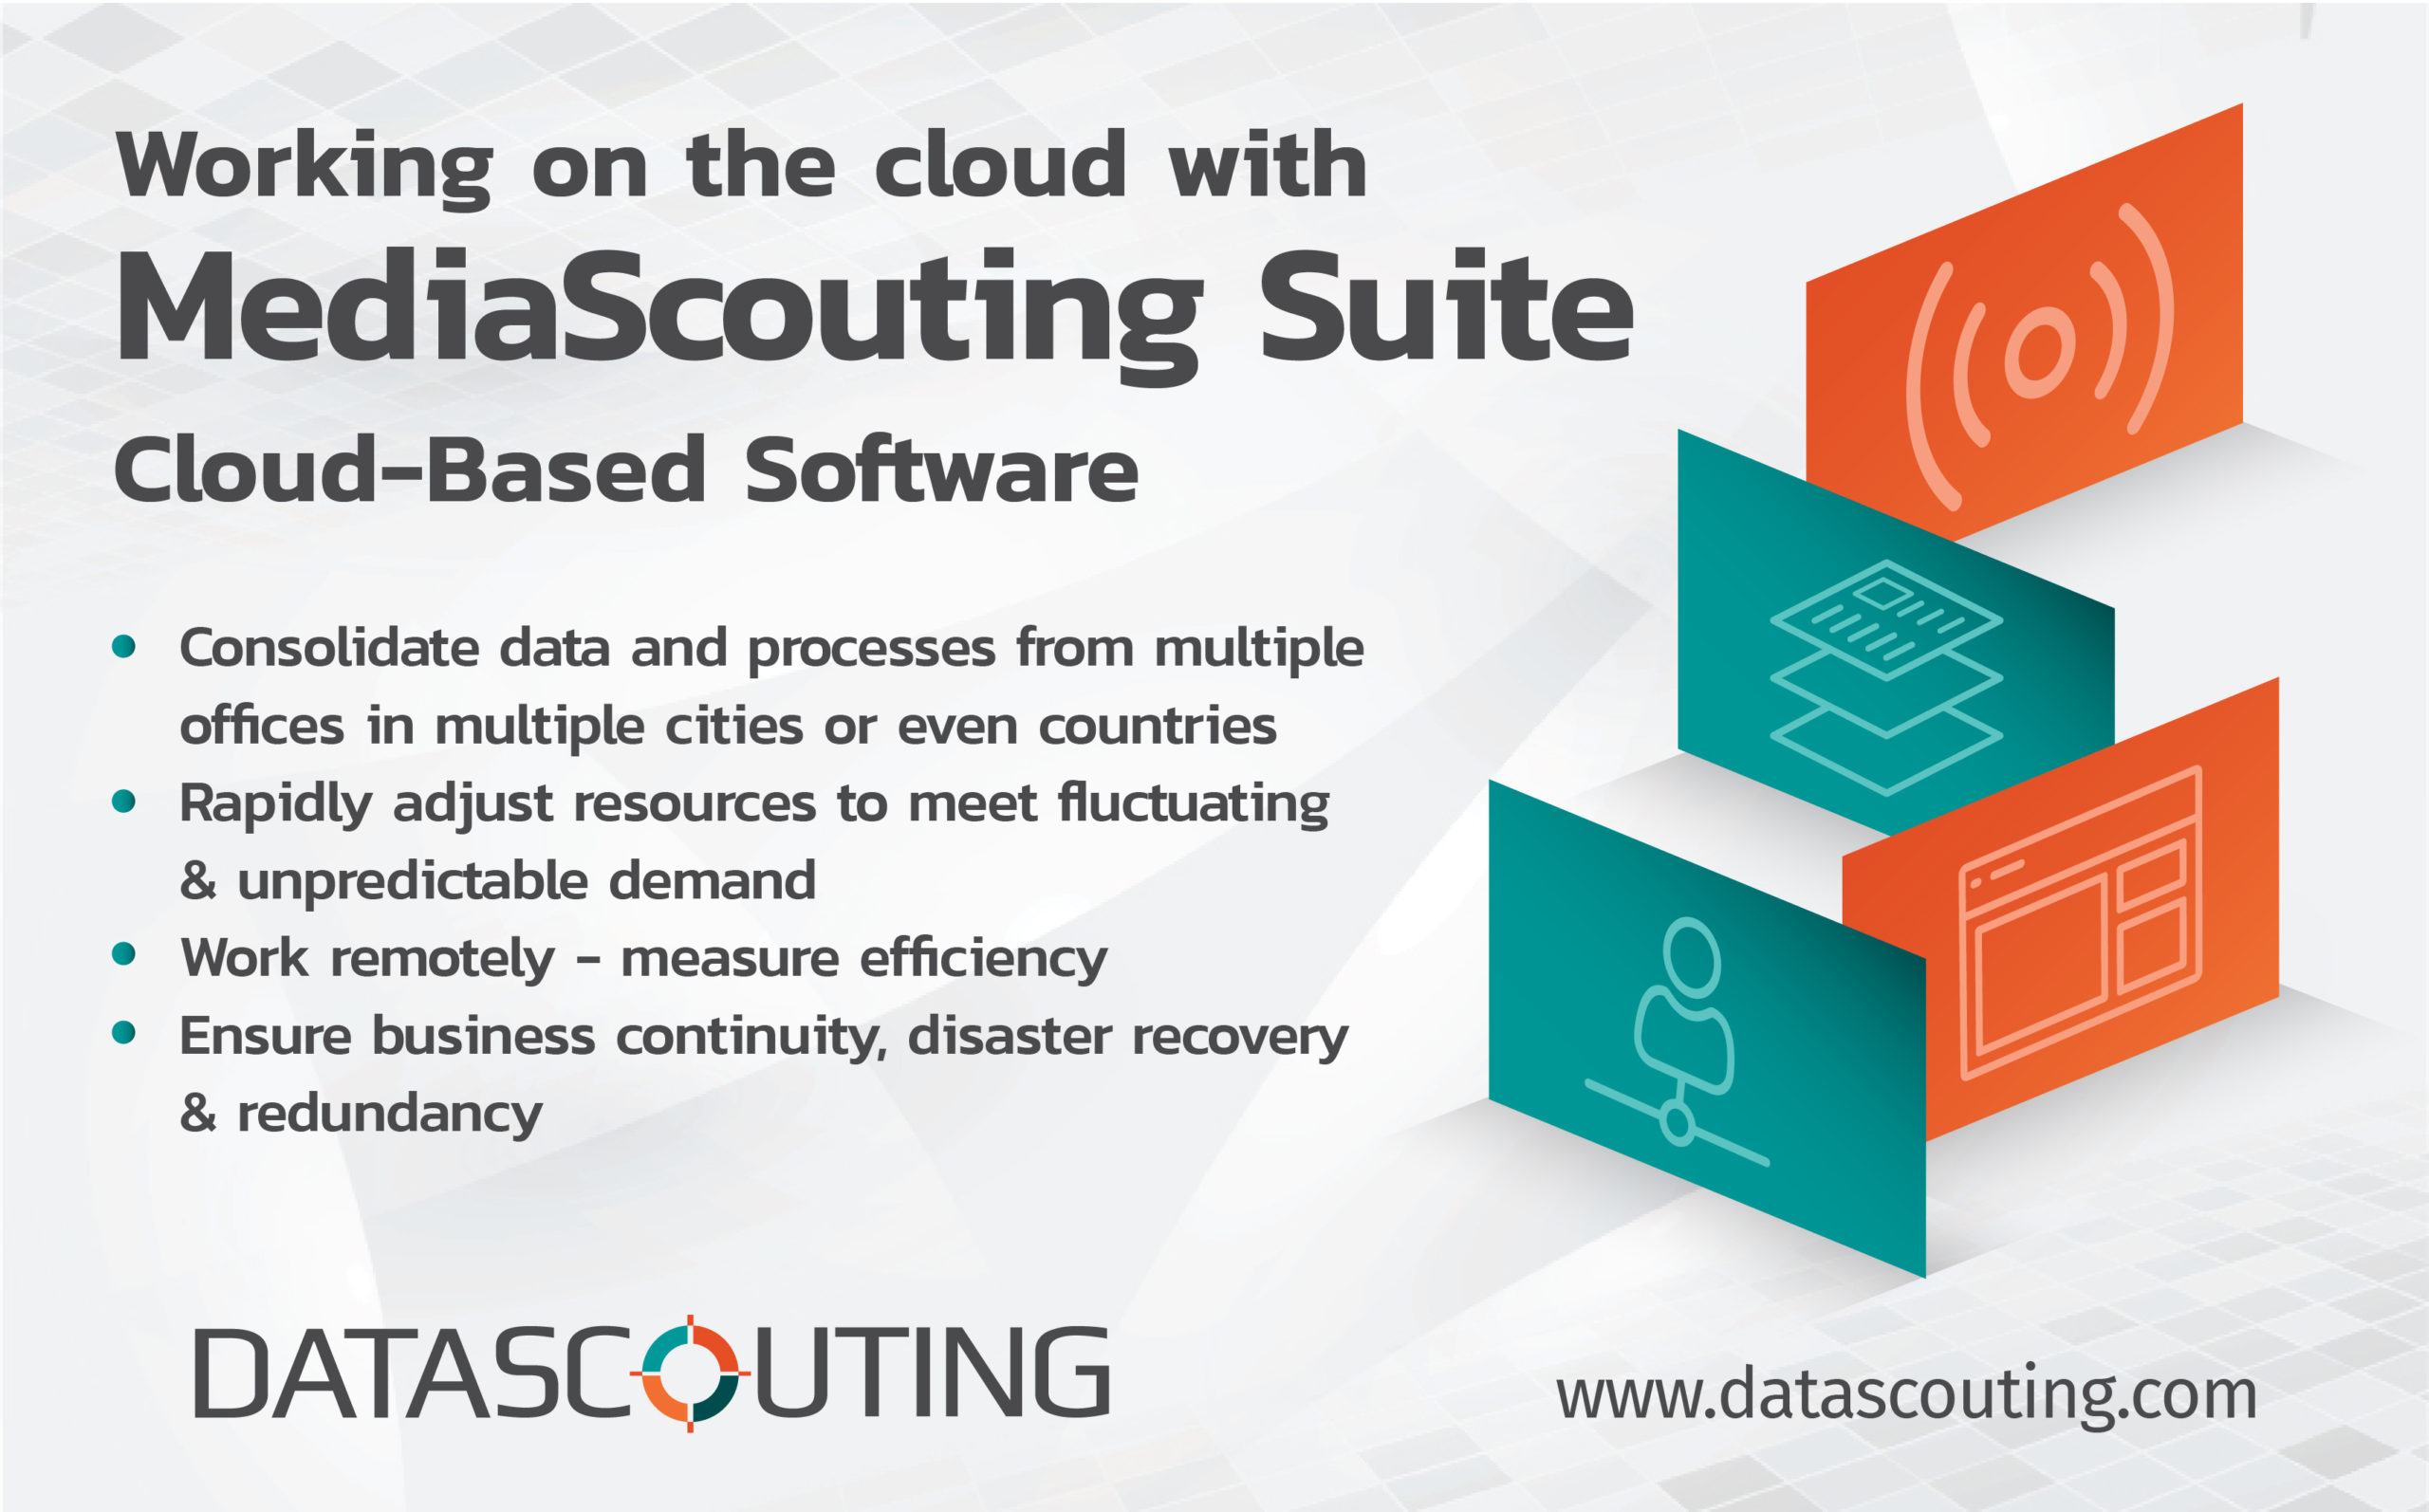 MediaScouting-cloud based software solution by DataScouting